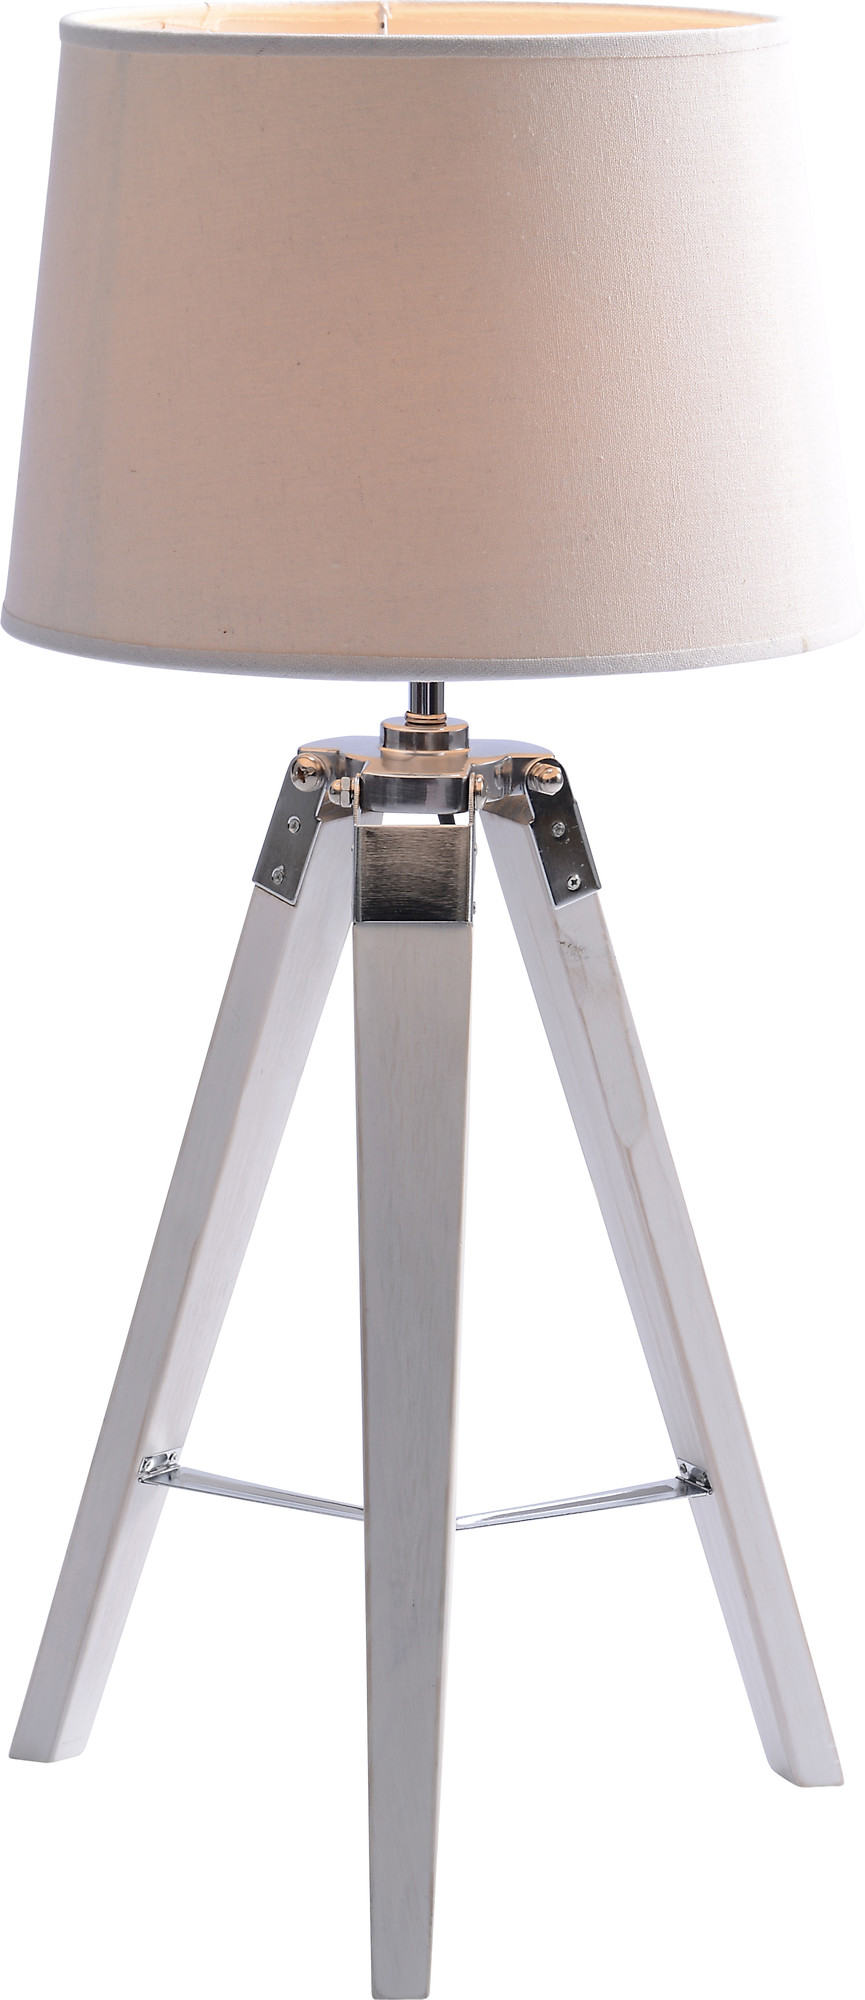 medium resolution of sku neor1006 eric small tripod table lamp is also sometimes listed under the following manufacturer numbers 75003